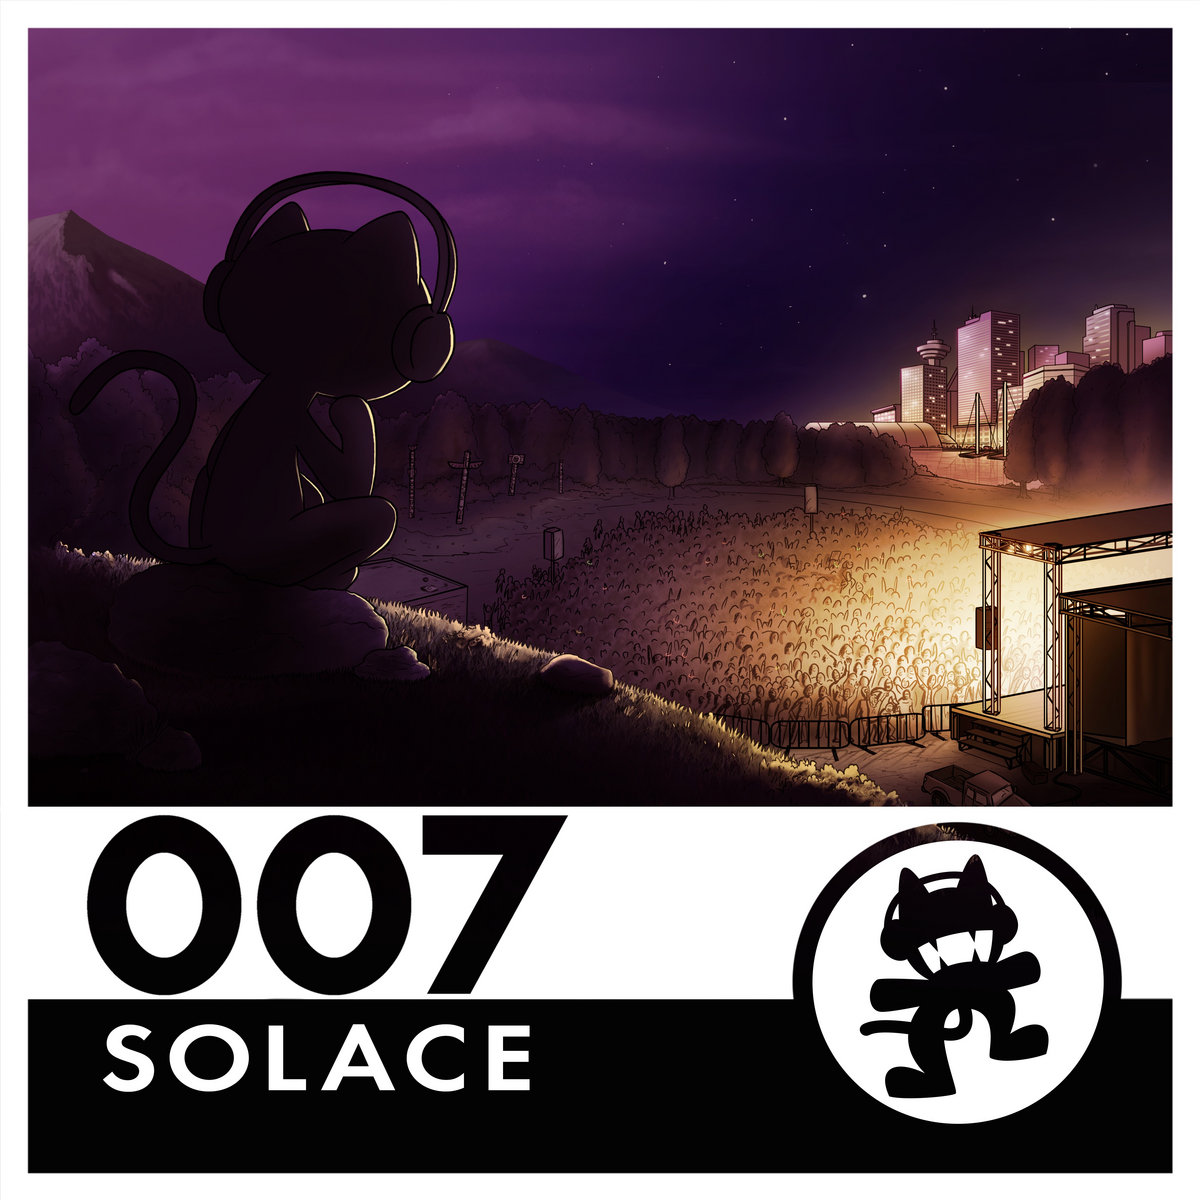 monstercat 007 - solace album mix